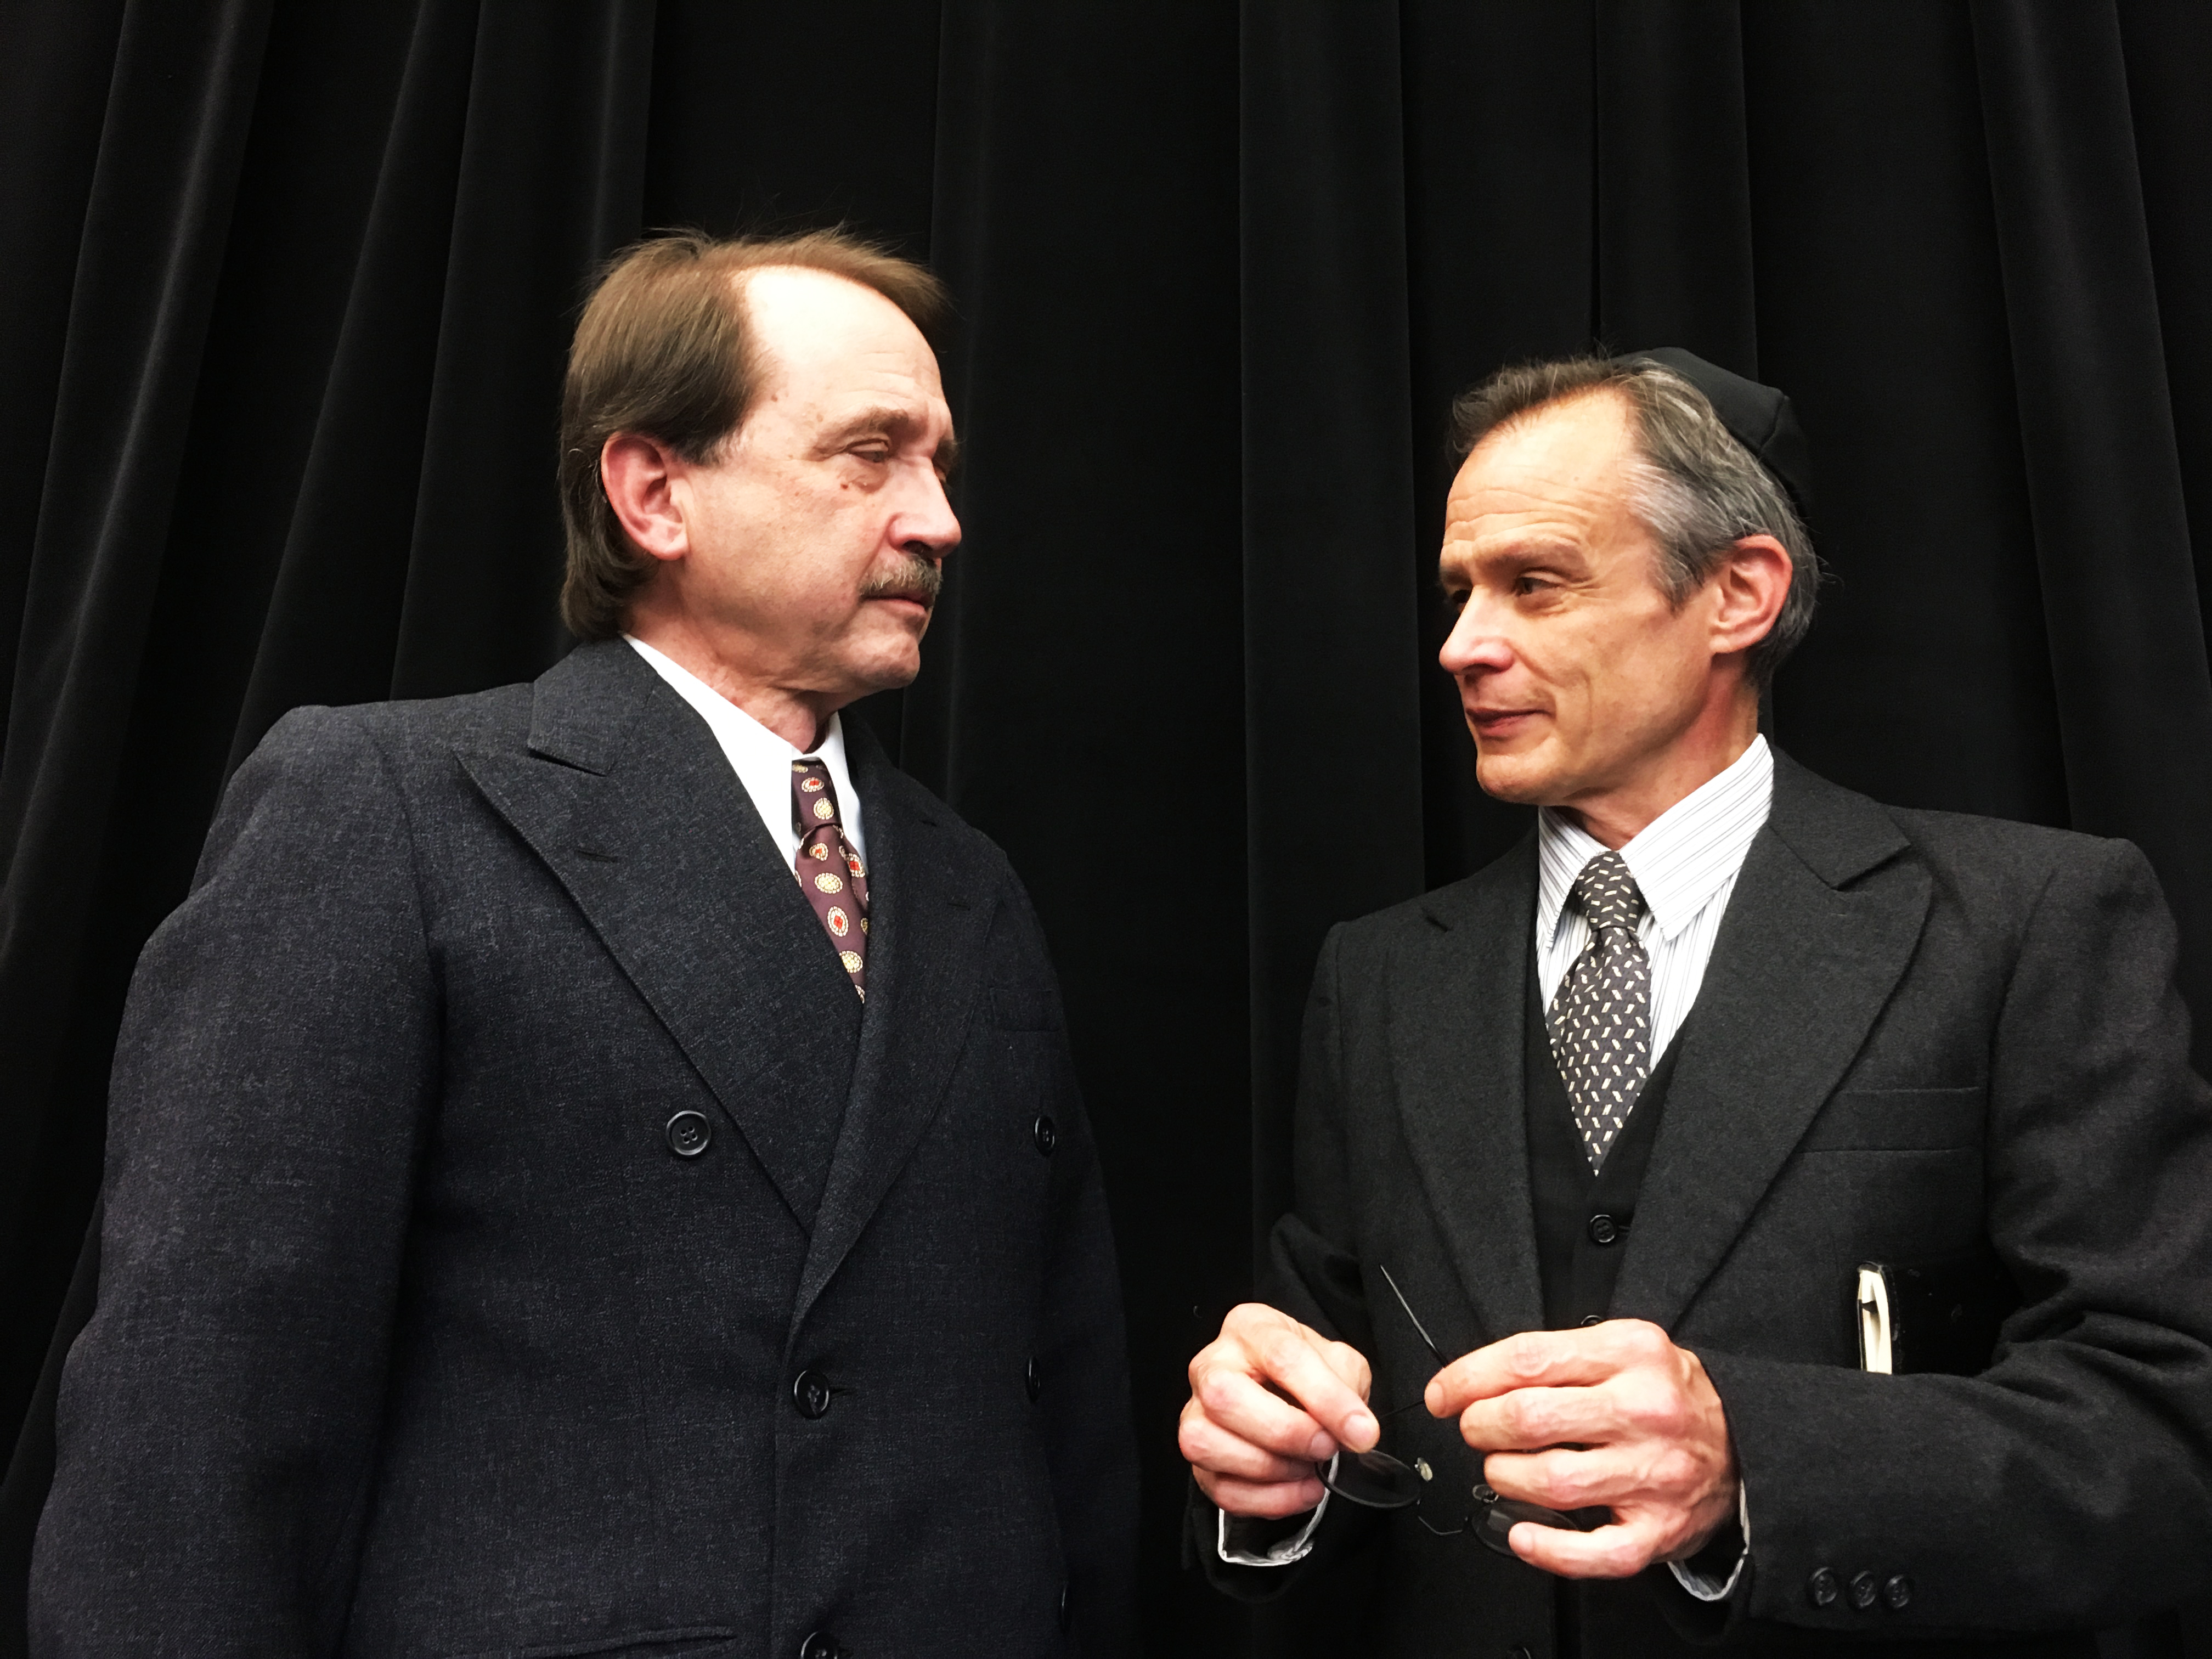 Antonio (Martin Giles, L) and Shylock (James FitzGerald) have a business relationship. Not shown: the monkey business that unfolds around them, and the ugly business that will soon erupt.